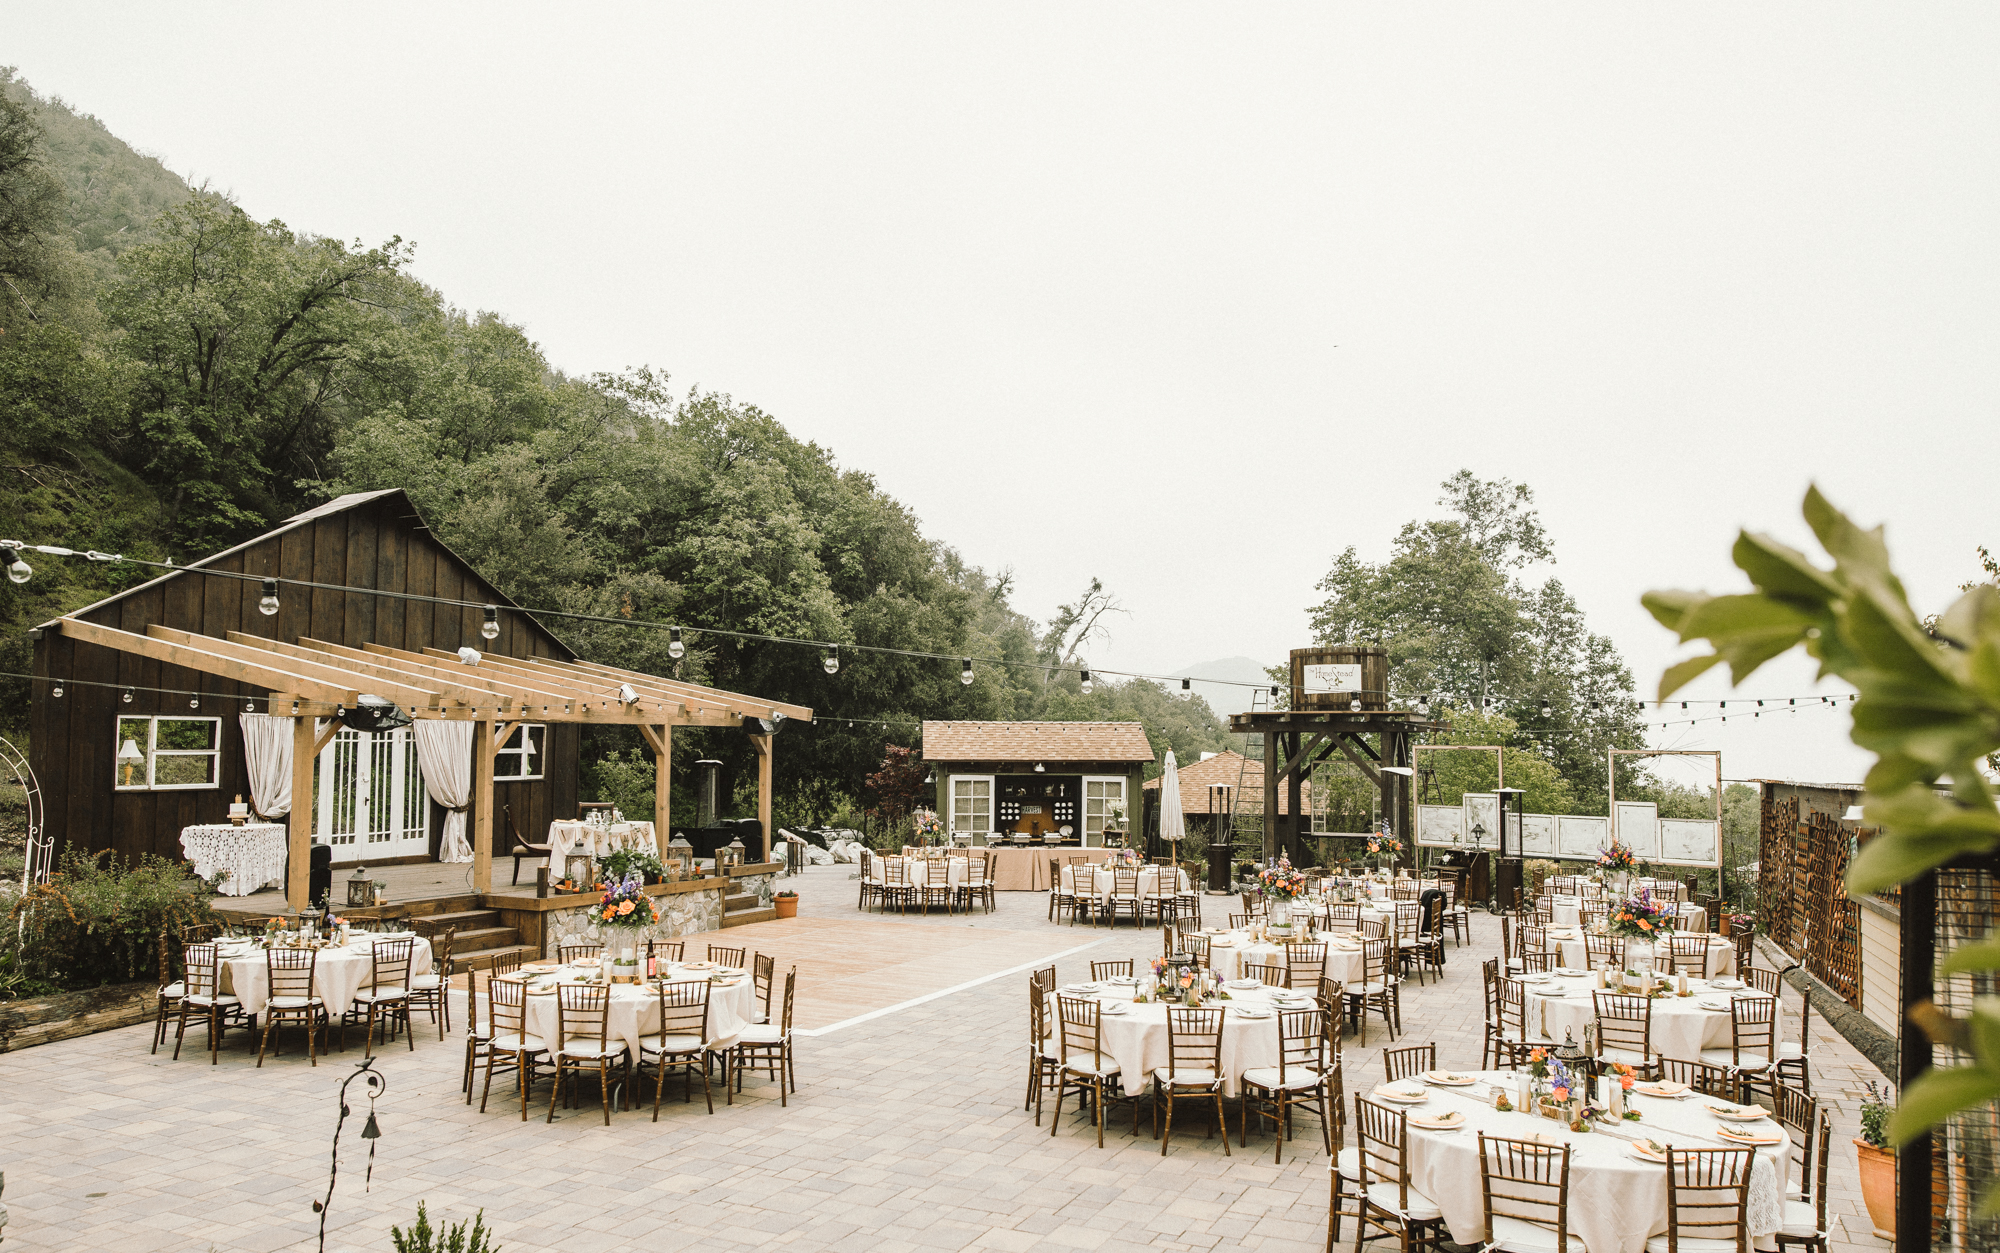 Isaiah & Taylor Photography - Los Angeles - Destination Wedding Photographers - Oak Glen Wilshire Ranch Foggy Forest Wedding-77.jpg